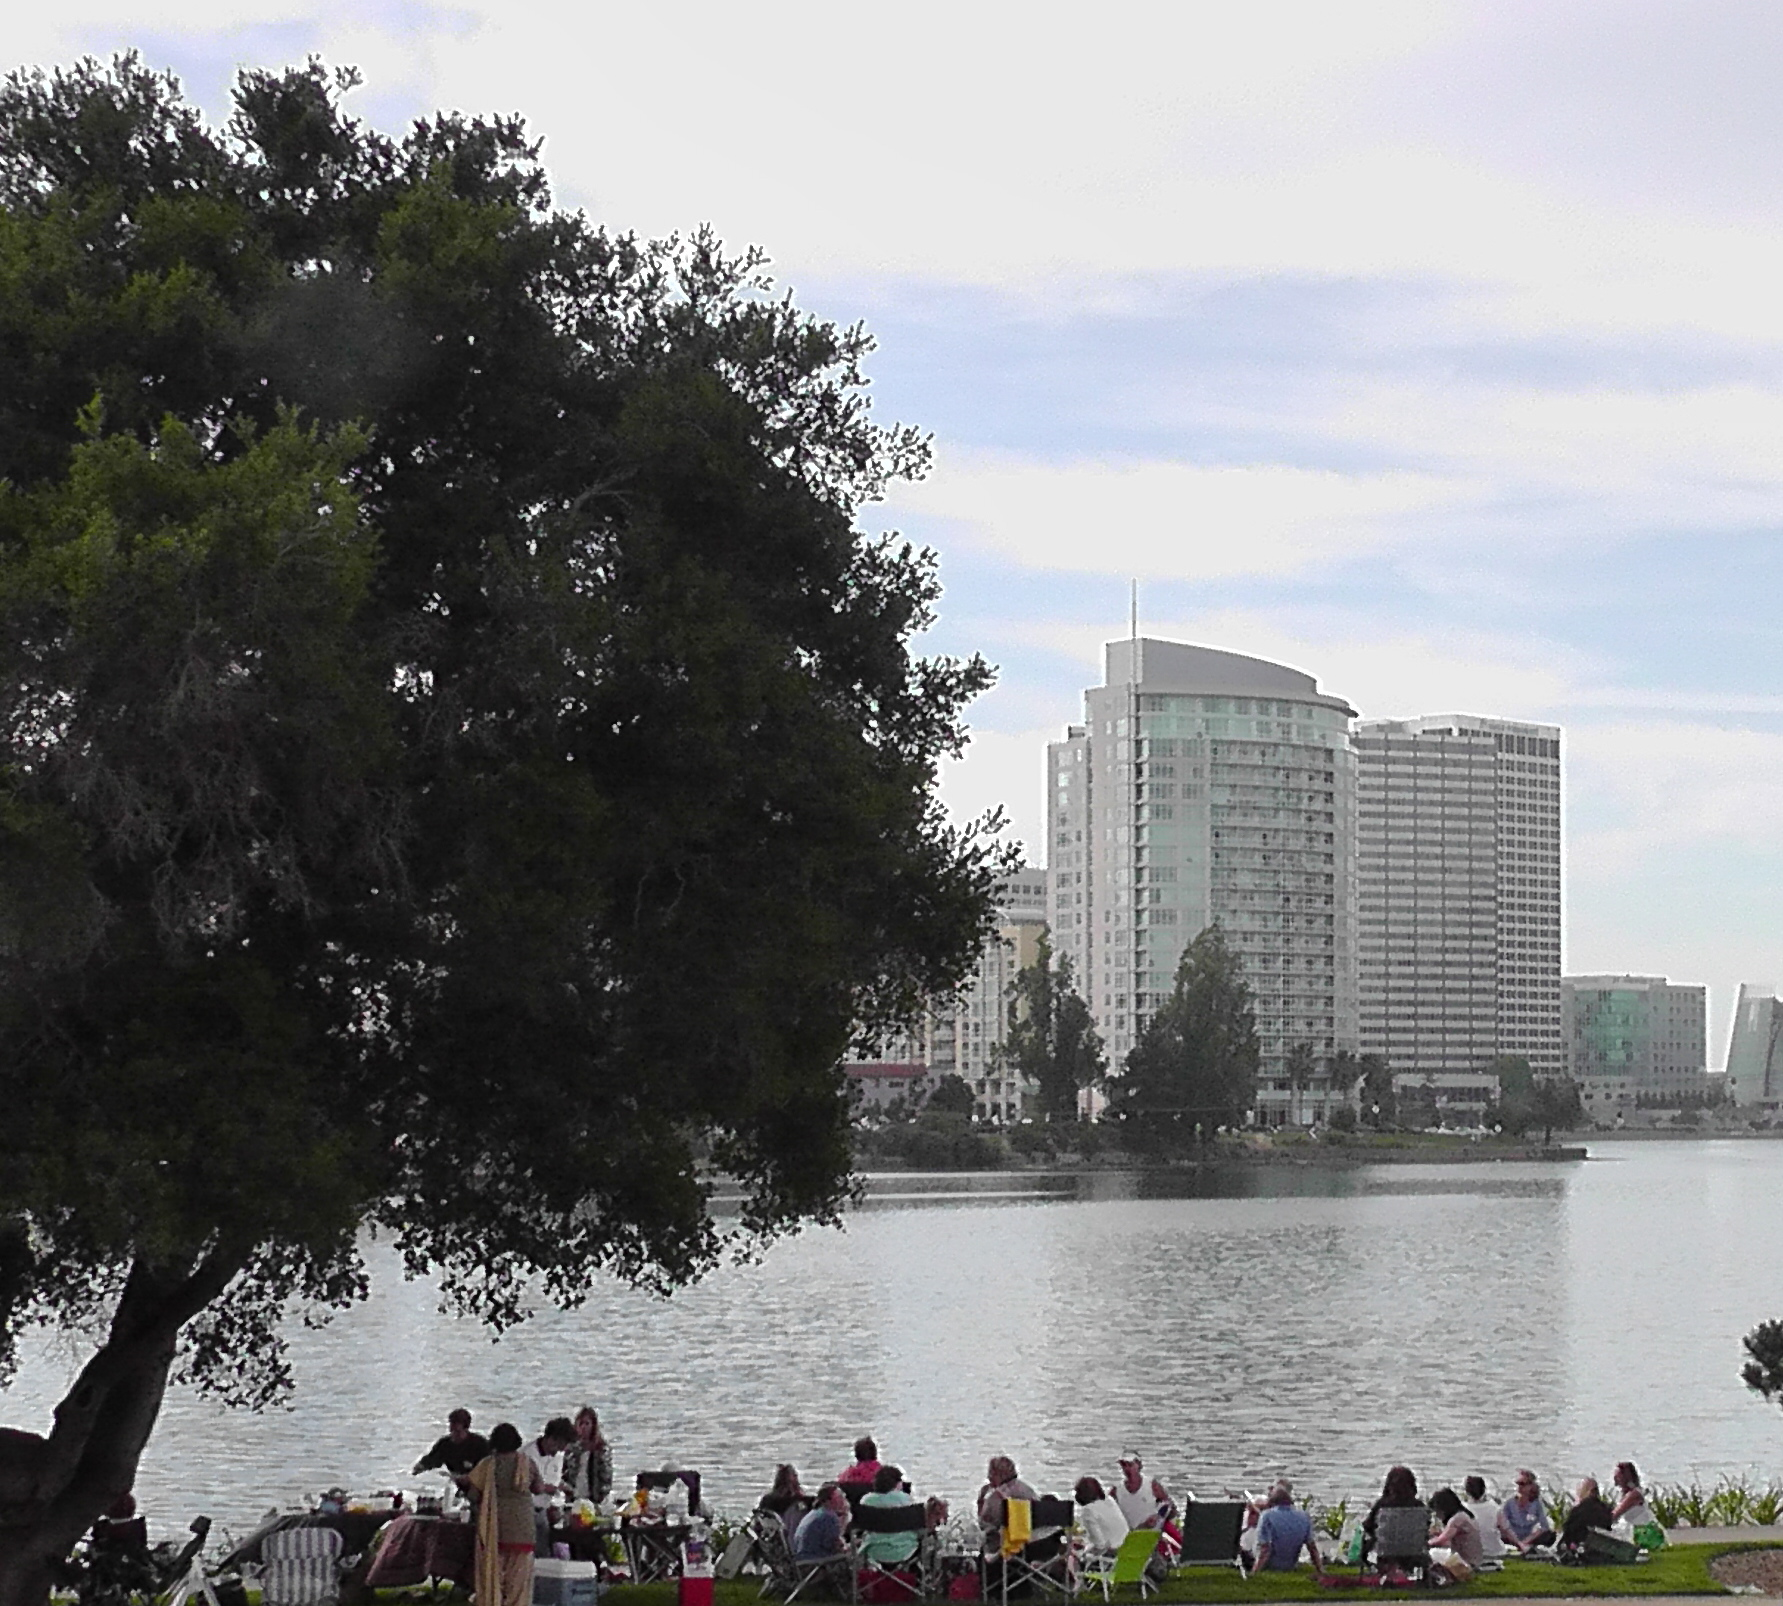 Deeksha Givers at Lake Merritt